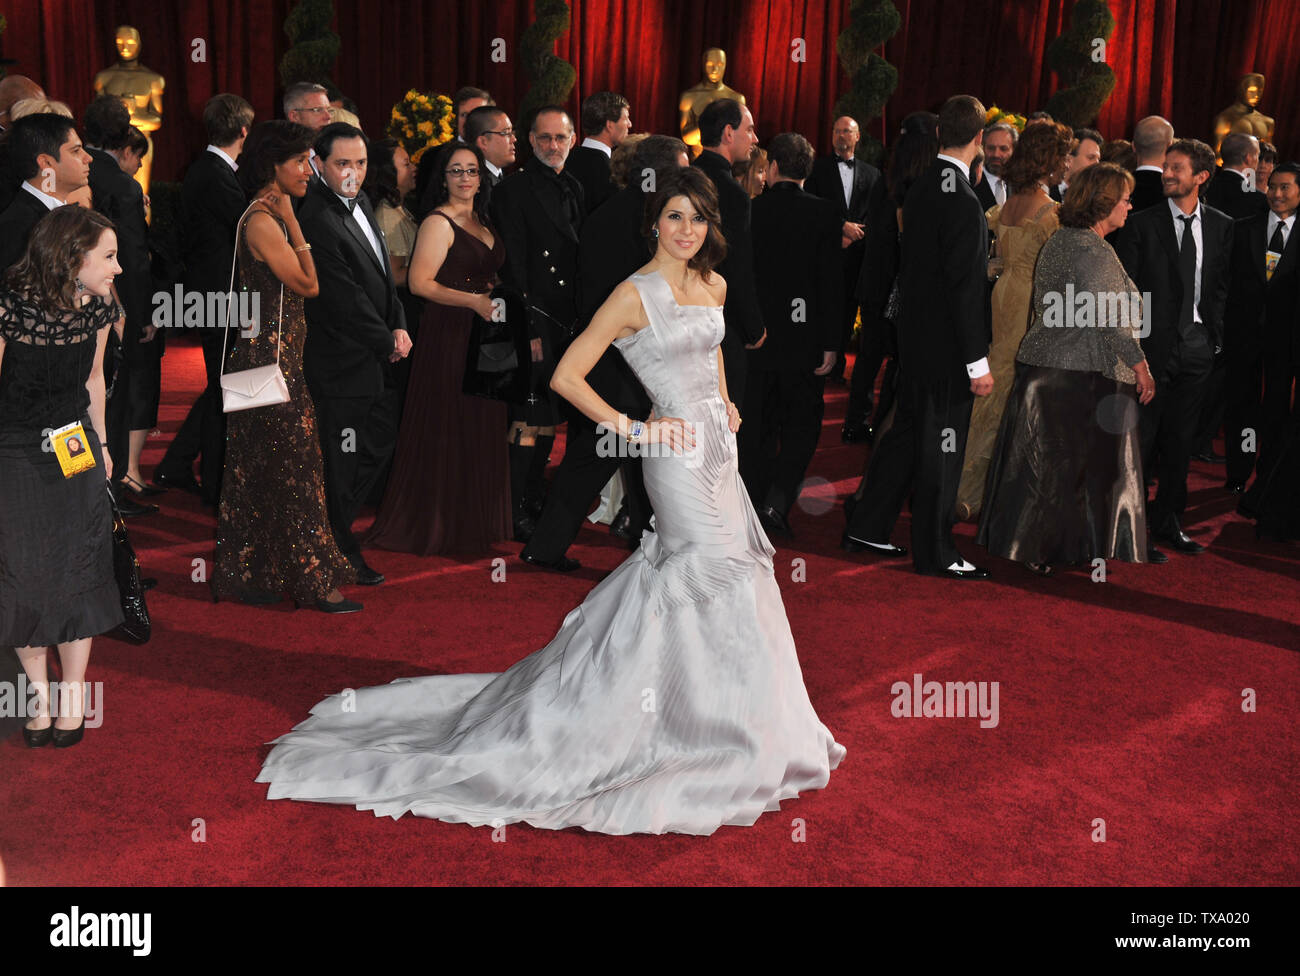 LOS ANGELES, CA. February 22, 2009: Marissa Tomei at the 81st Academy Awards at the Kodak Theatre, Hollywood. © 2009 Paul Smith / Featureflash - Stock Image